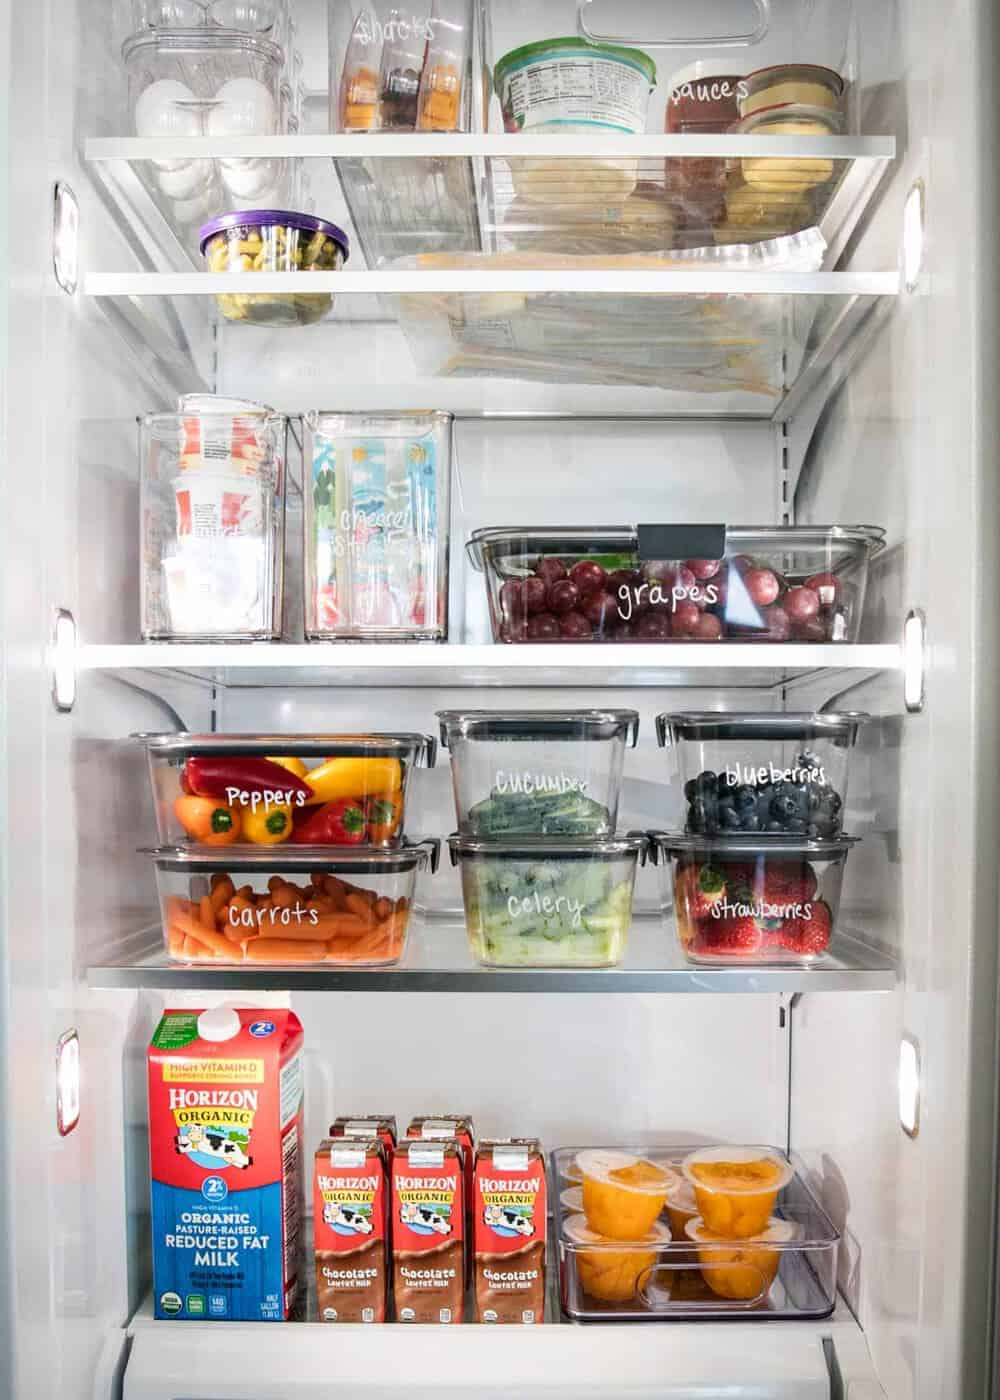 Fridge organization